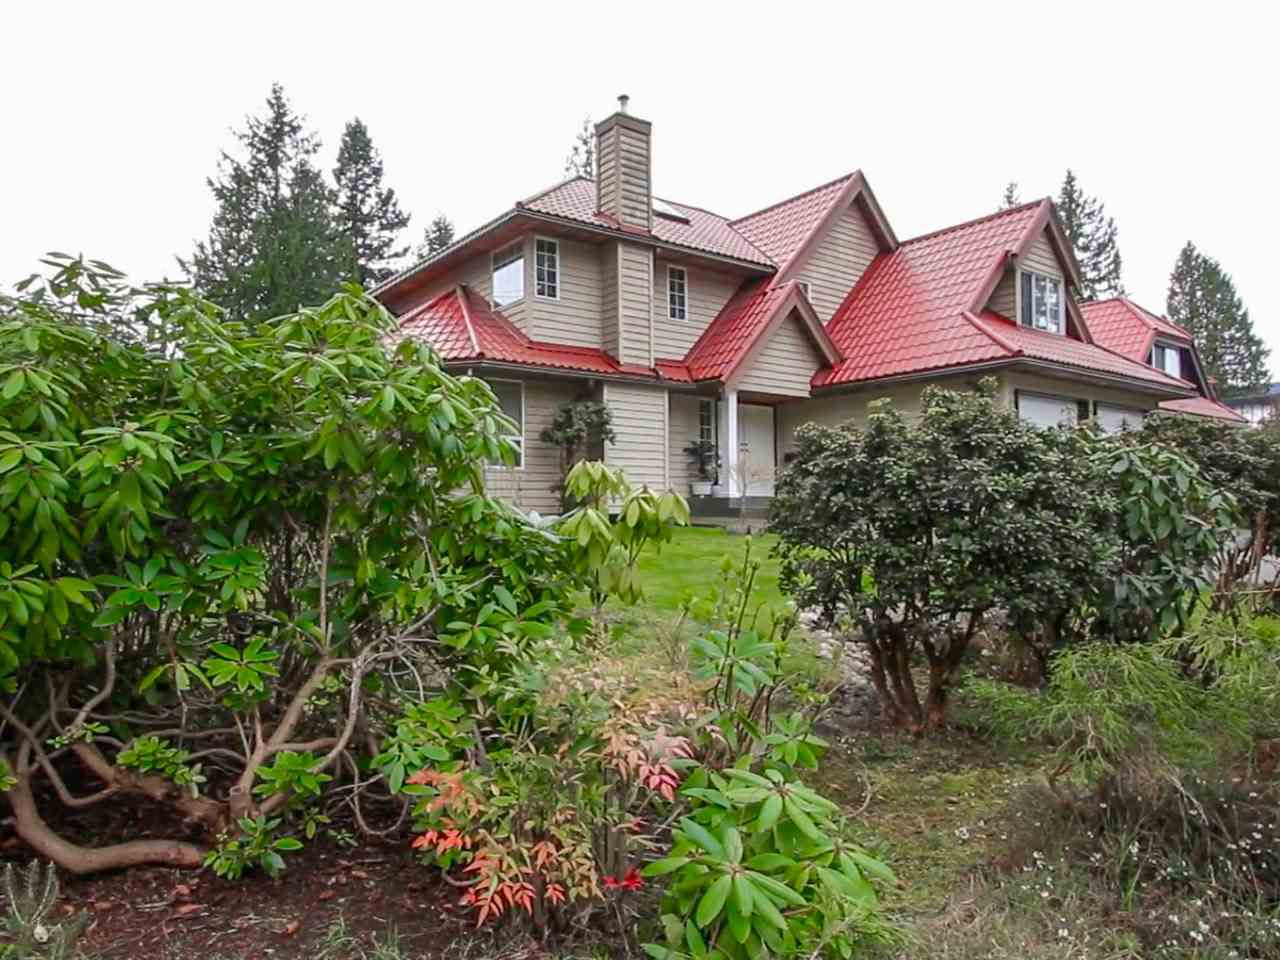 Main Photo: 2635 EDGEMONT BOULEVARD in North Vancouver: Edgemont House for sale : MLS®# R2053973